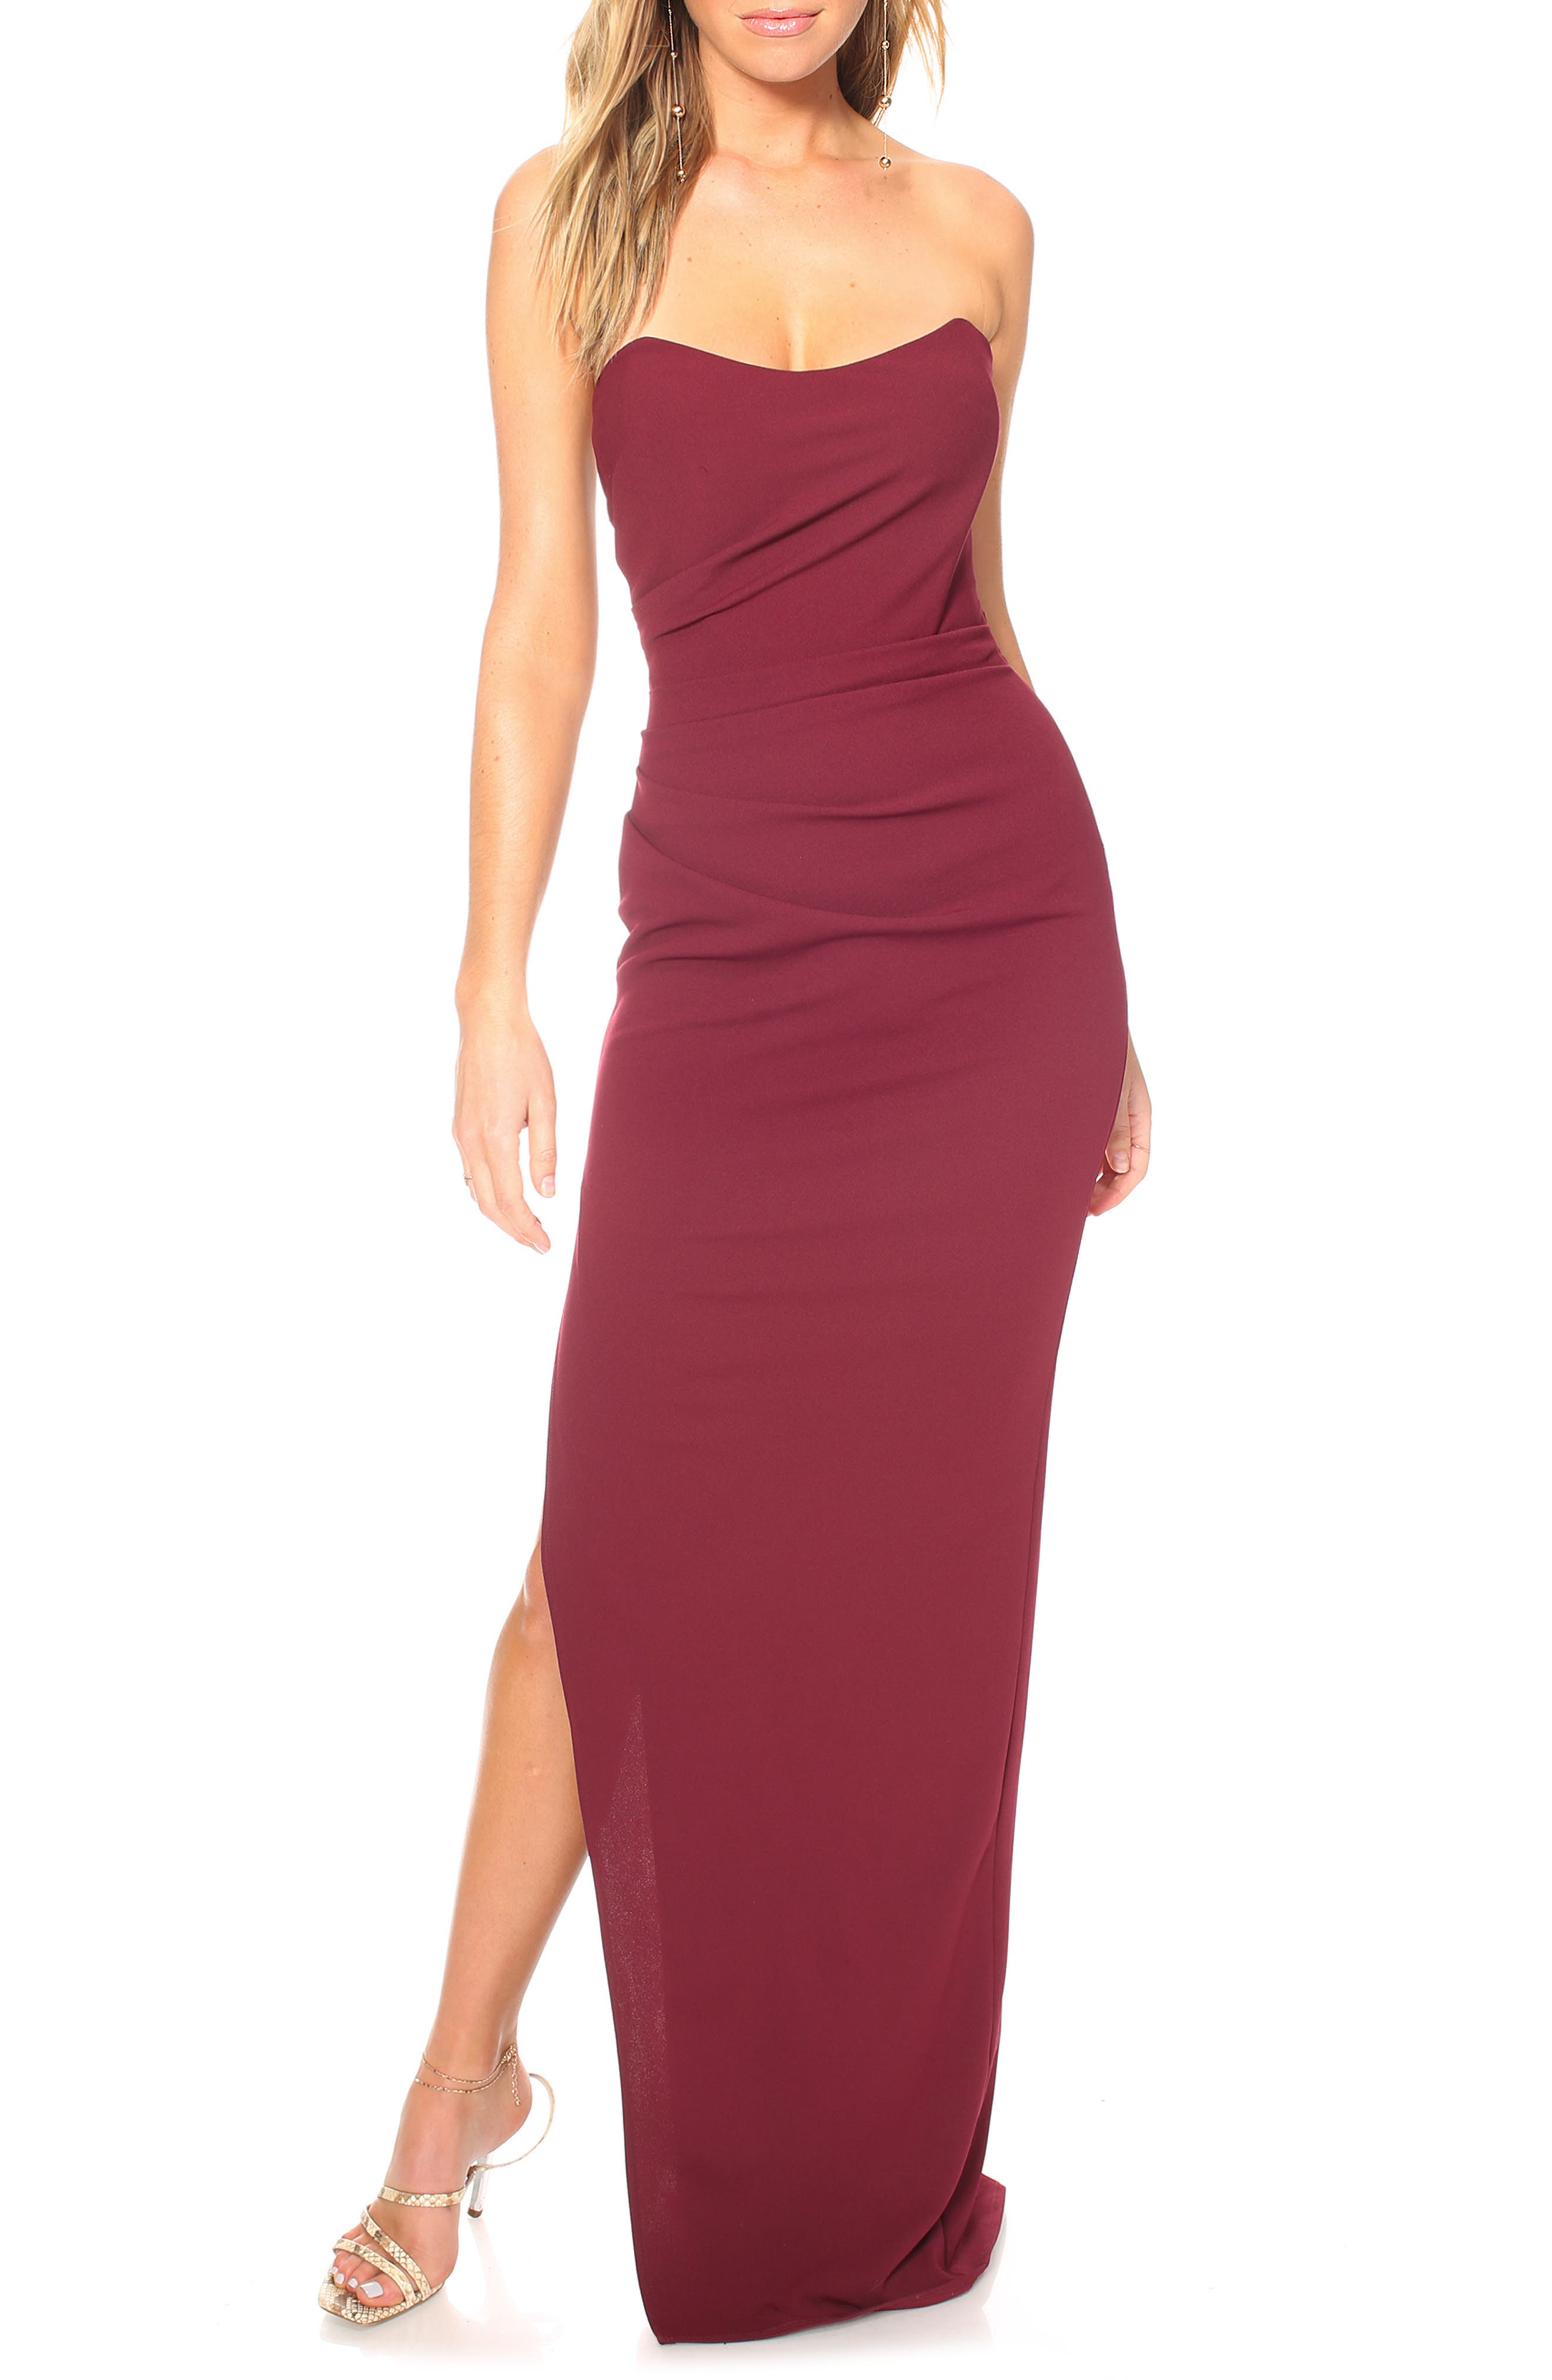 Katie May Sway Strapless Column Dress, Burgundy